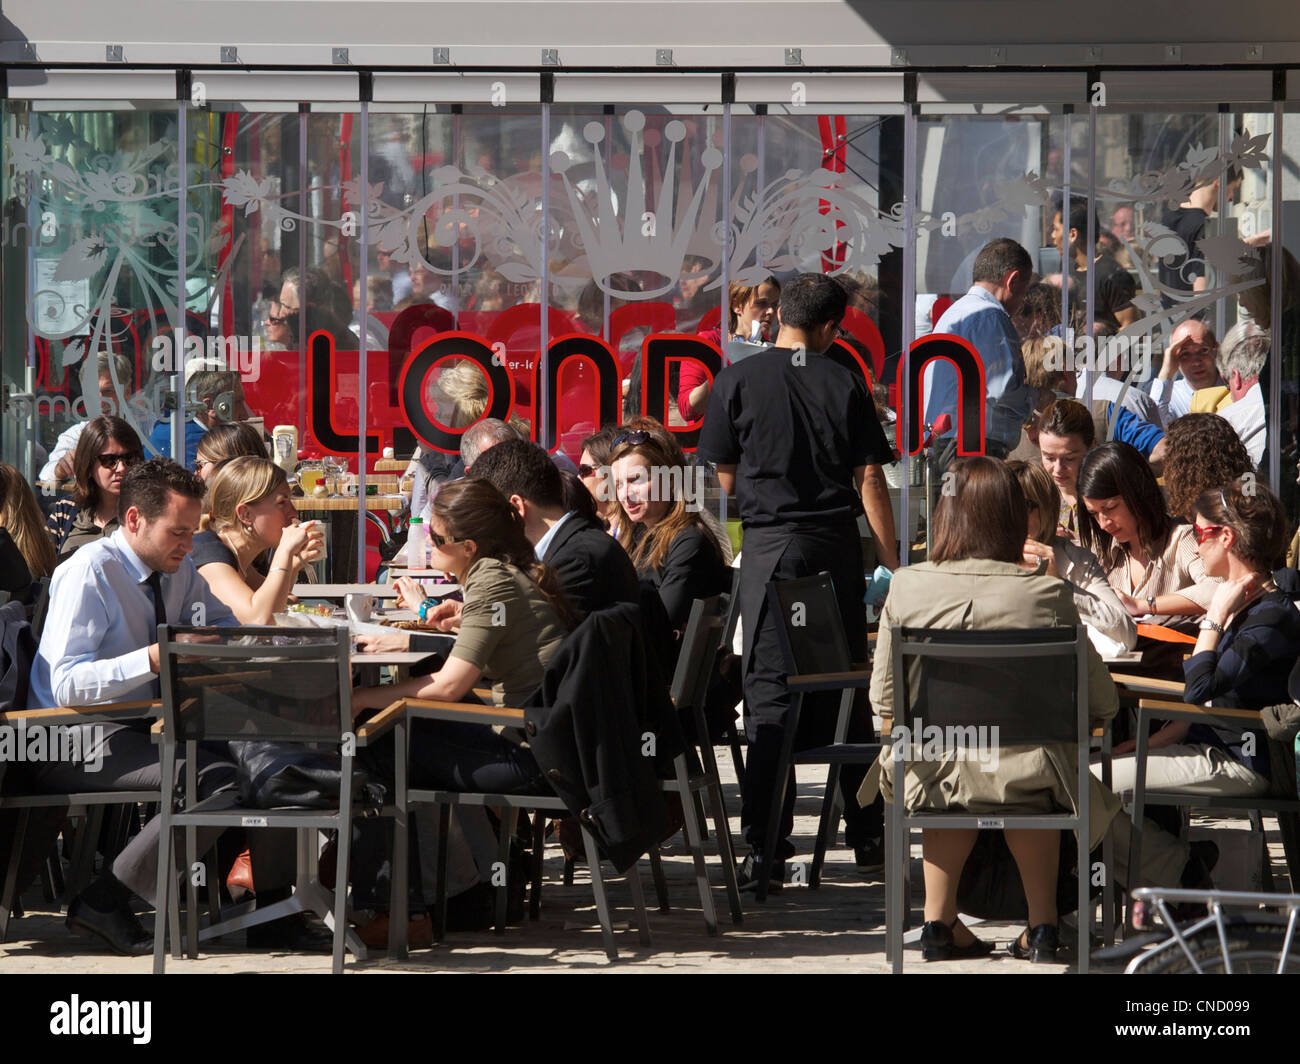 Many people enjoying the sun during their lunch break on Place du Luxembourg in Brussels, Belgium Stock Photo